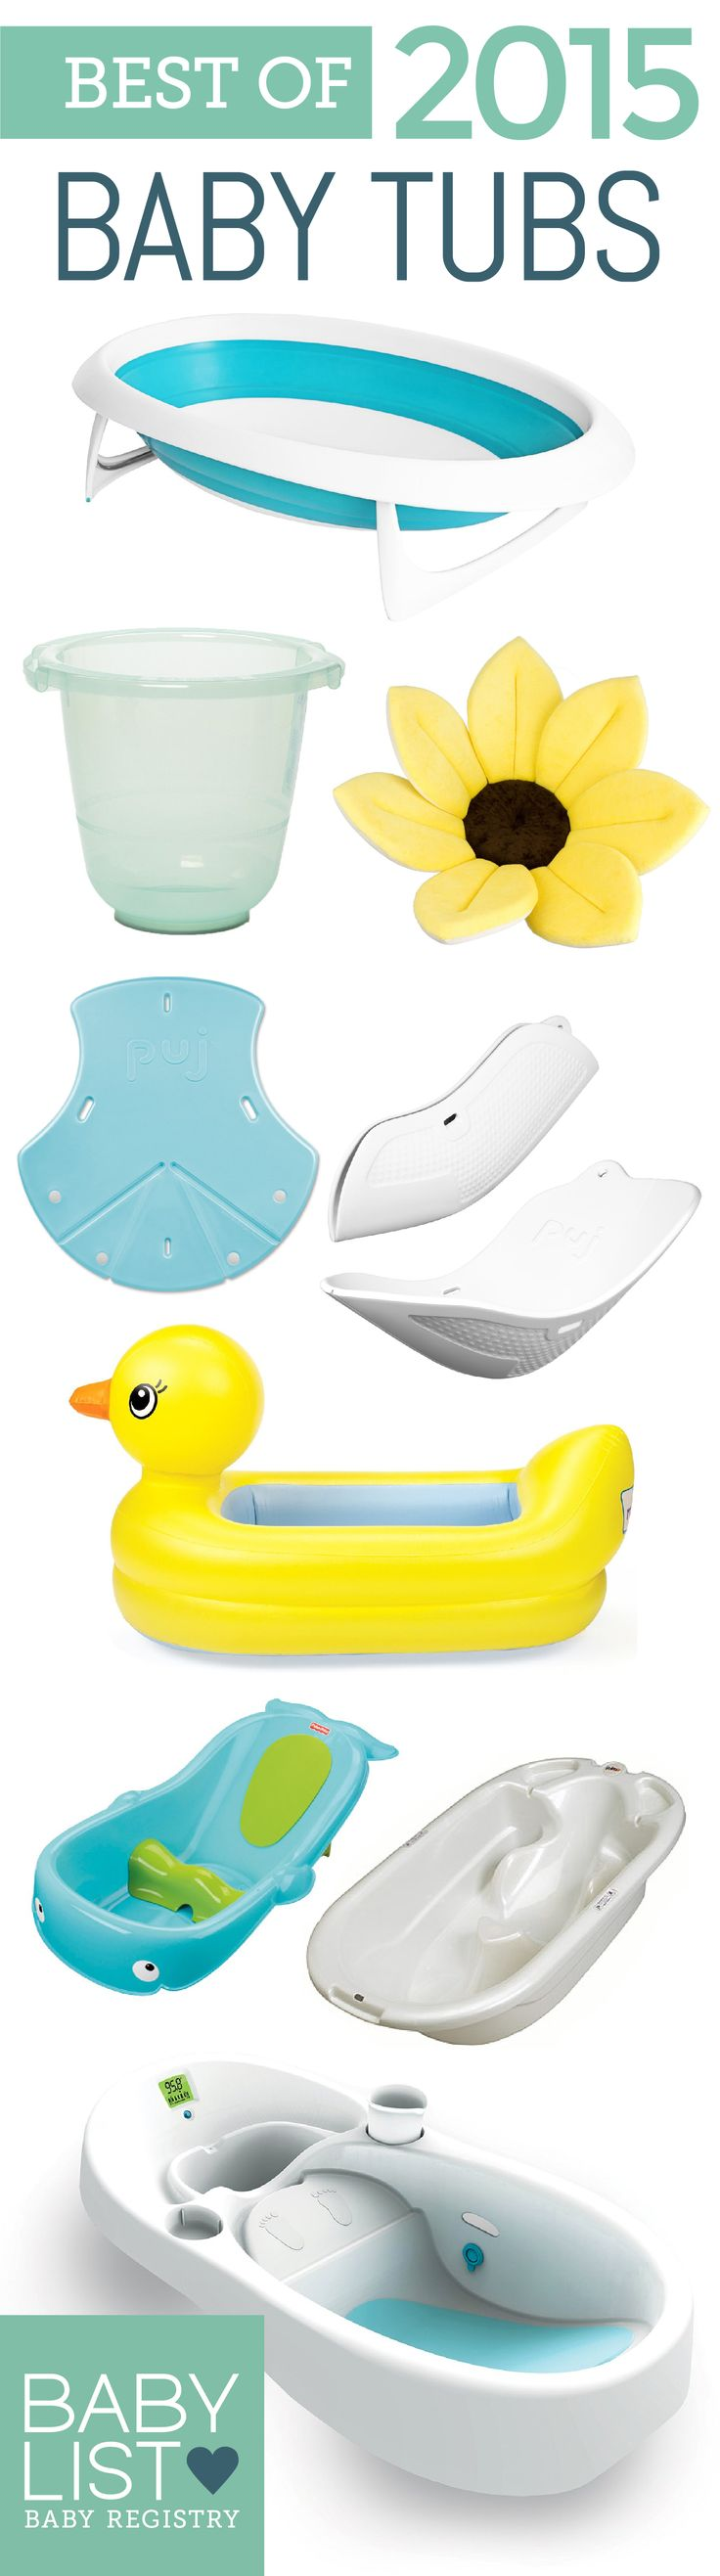 Find the best tub for you. Start with the best 8 baby bathtubs of 2015 - based on our own research + input from thousands of parents. Use this guide to help you figure out the best baby bathtub for your family's needs and priorities.